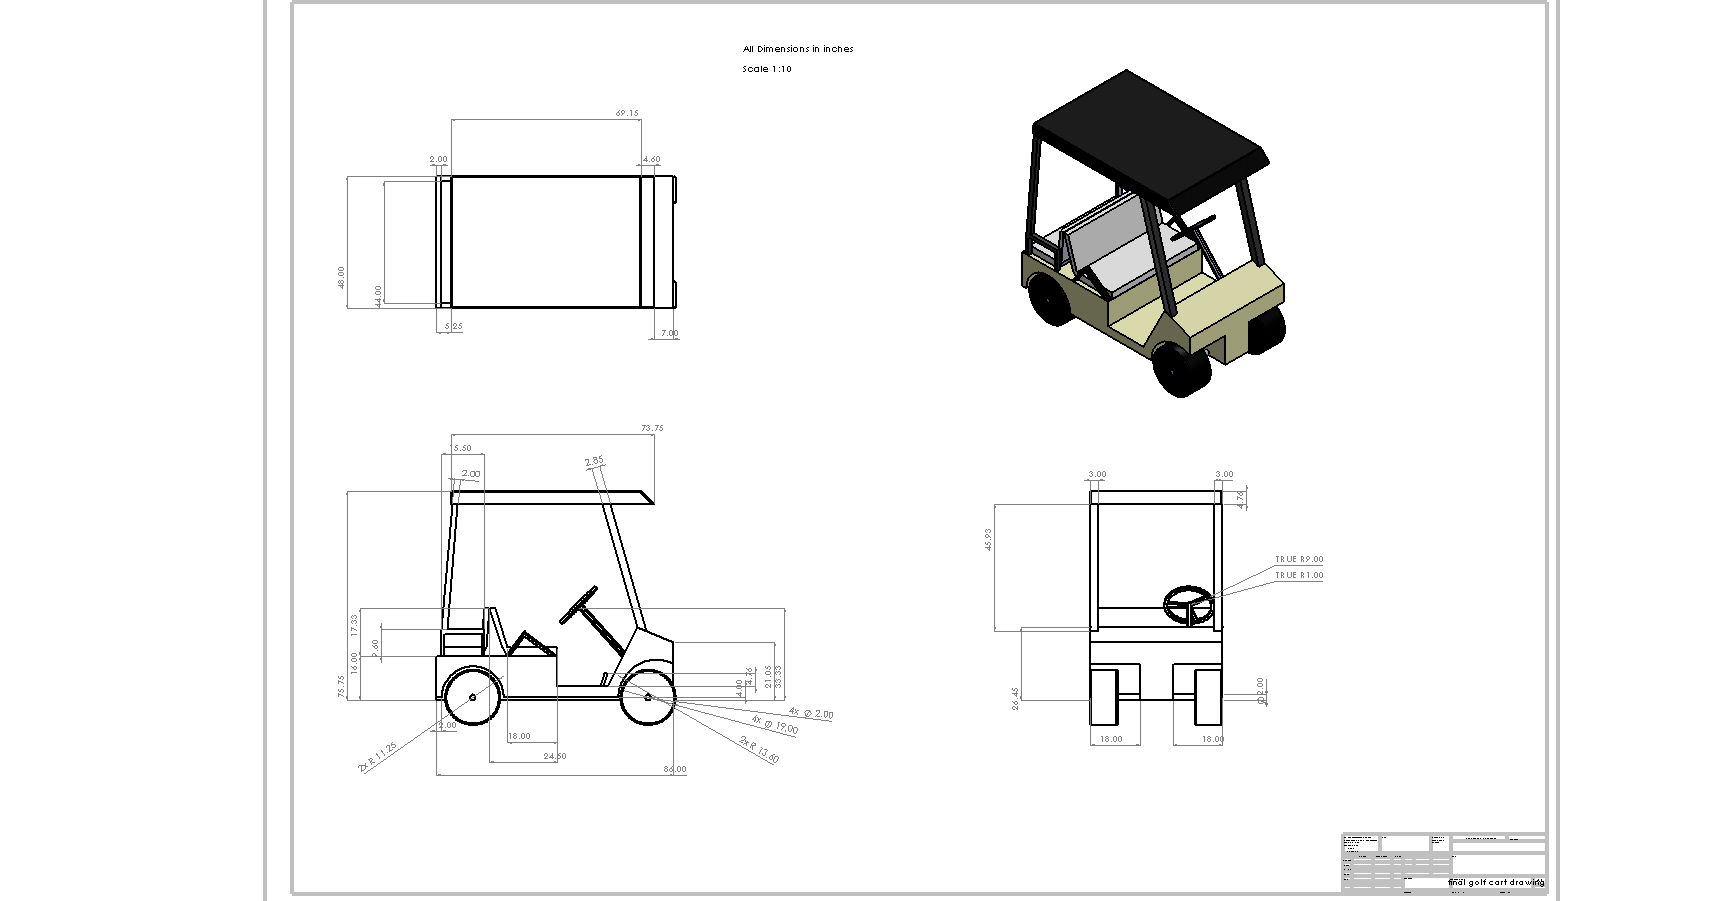 Ez Golf Carts Dimensions